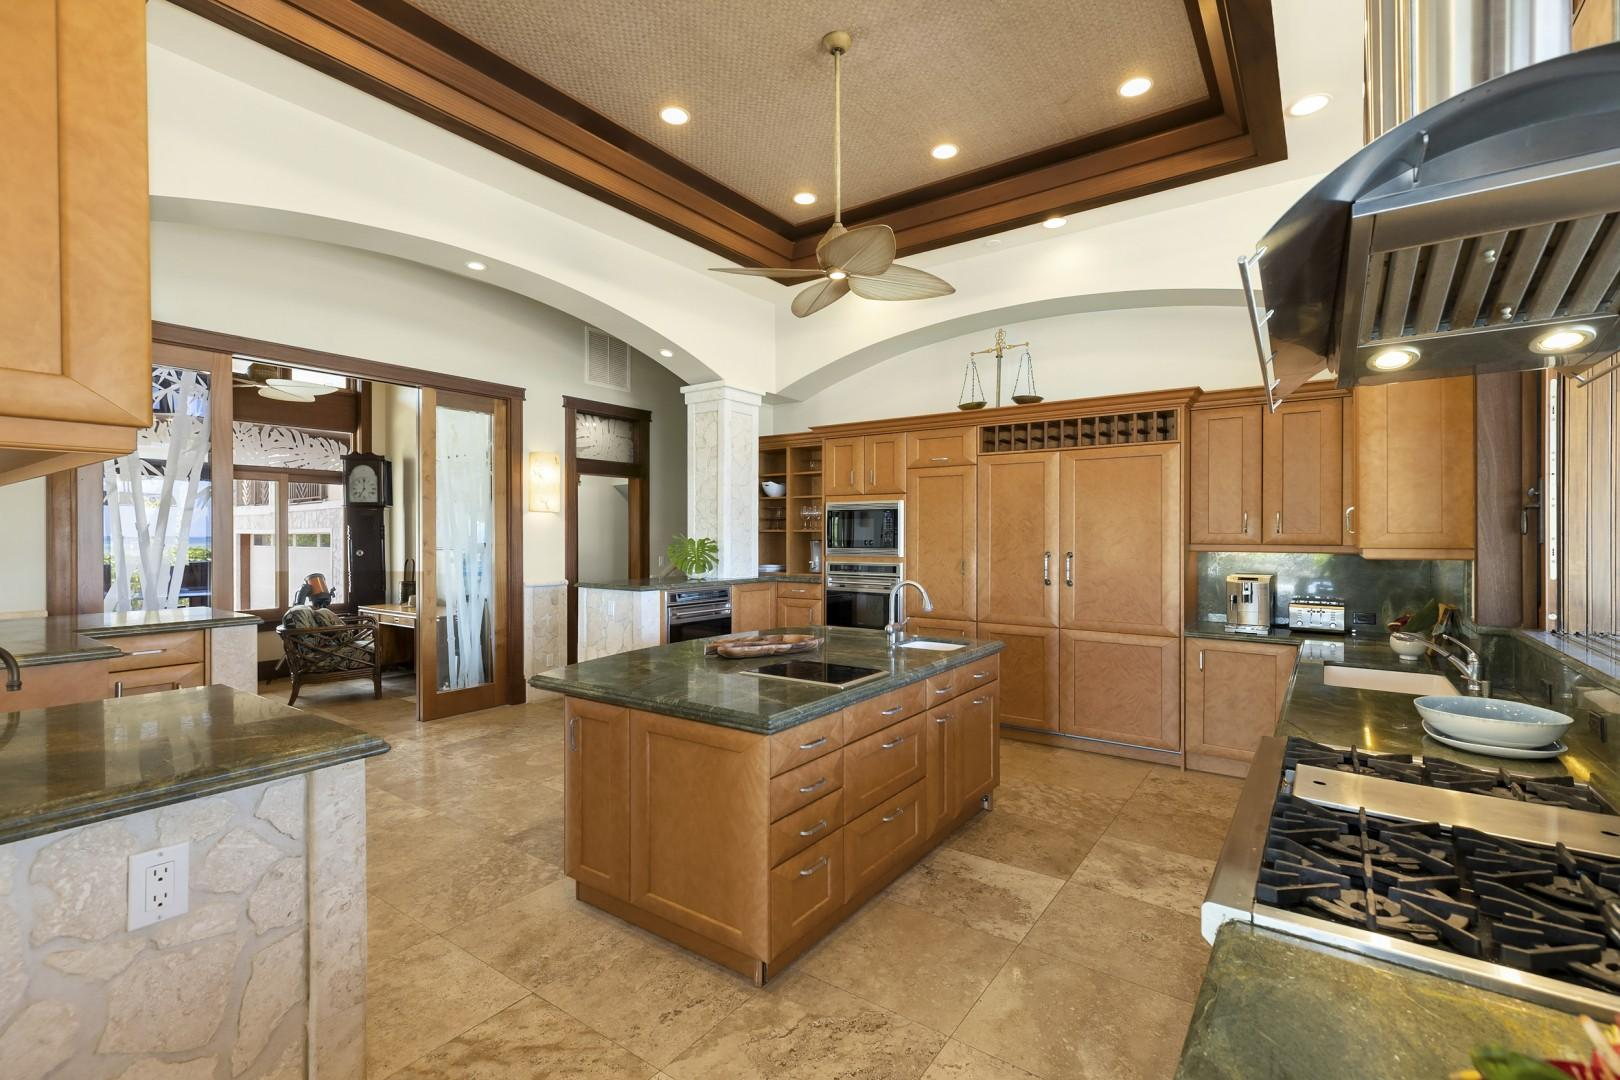 Kitchen is spacious with Gas Range and high end appliances